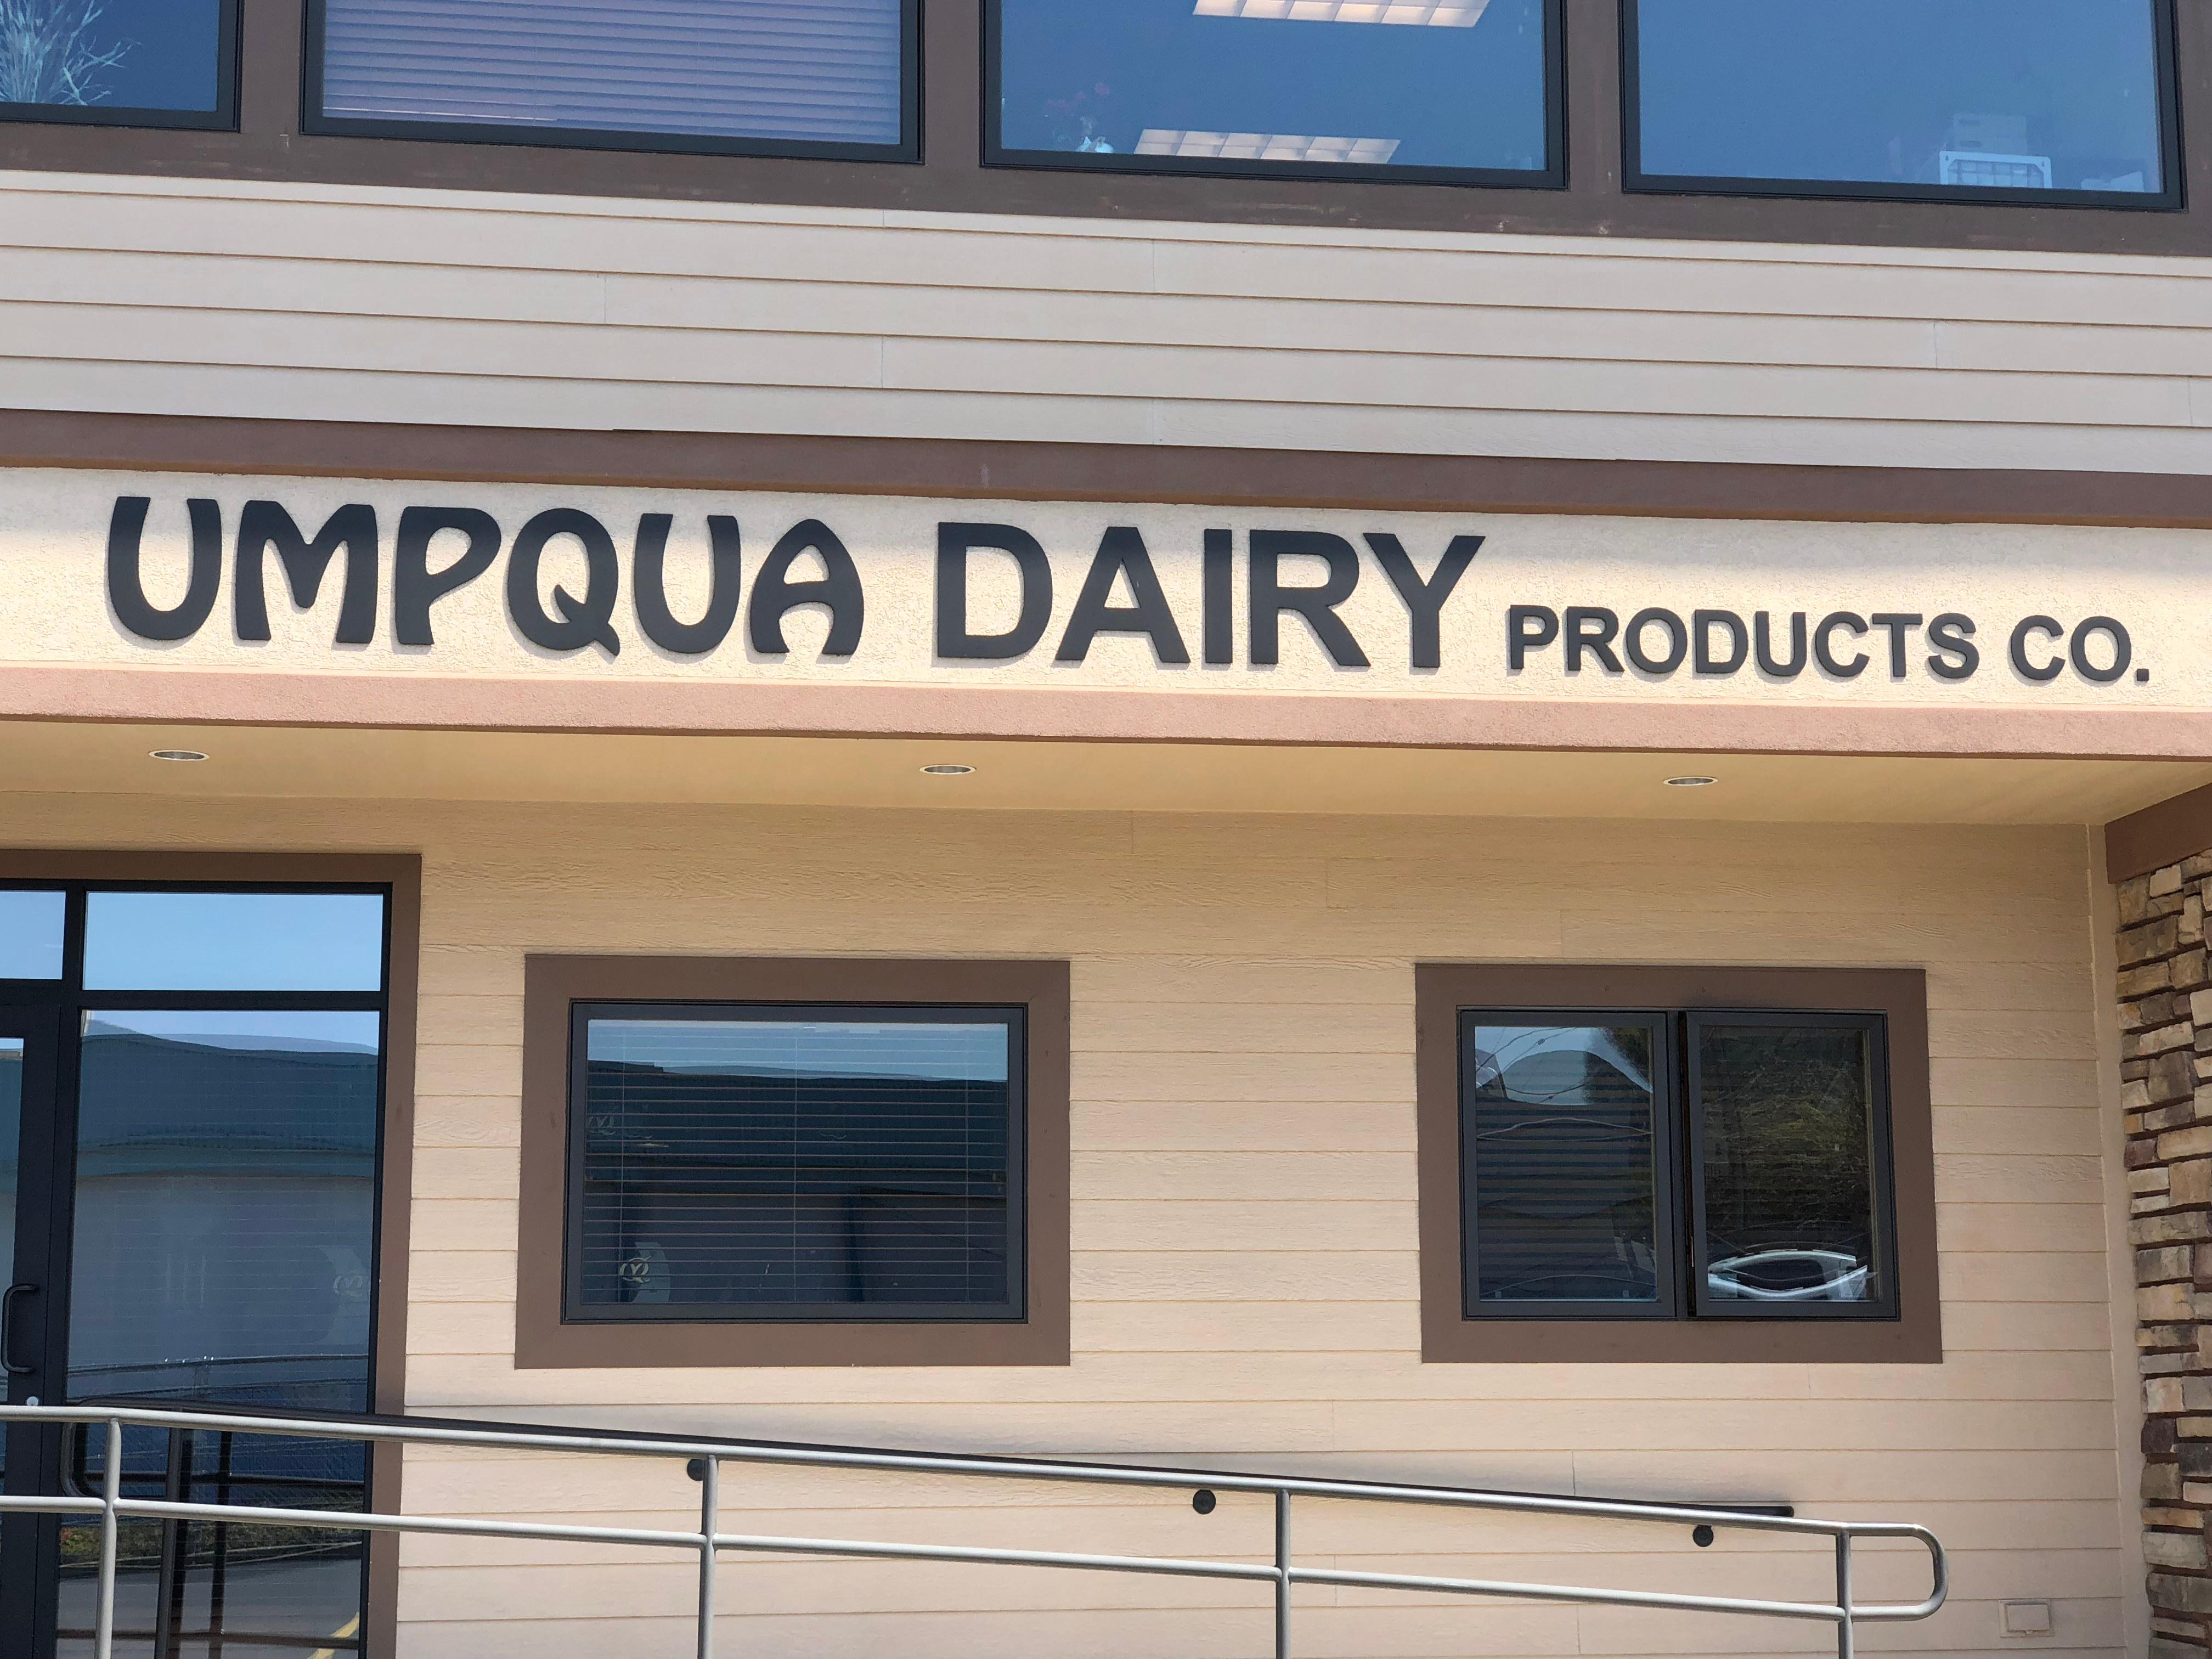 Five of Umpqua's products won best in the region at the 107th annual Oregon Dairy Industries Conference. The company won for Best Cottage Cheese, Sour Cream, Buttermilk, Vanilla Ice Cream and Chocolate Ice Cream. (SBG).